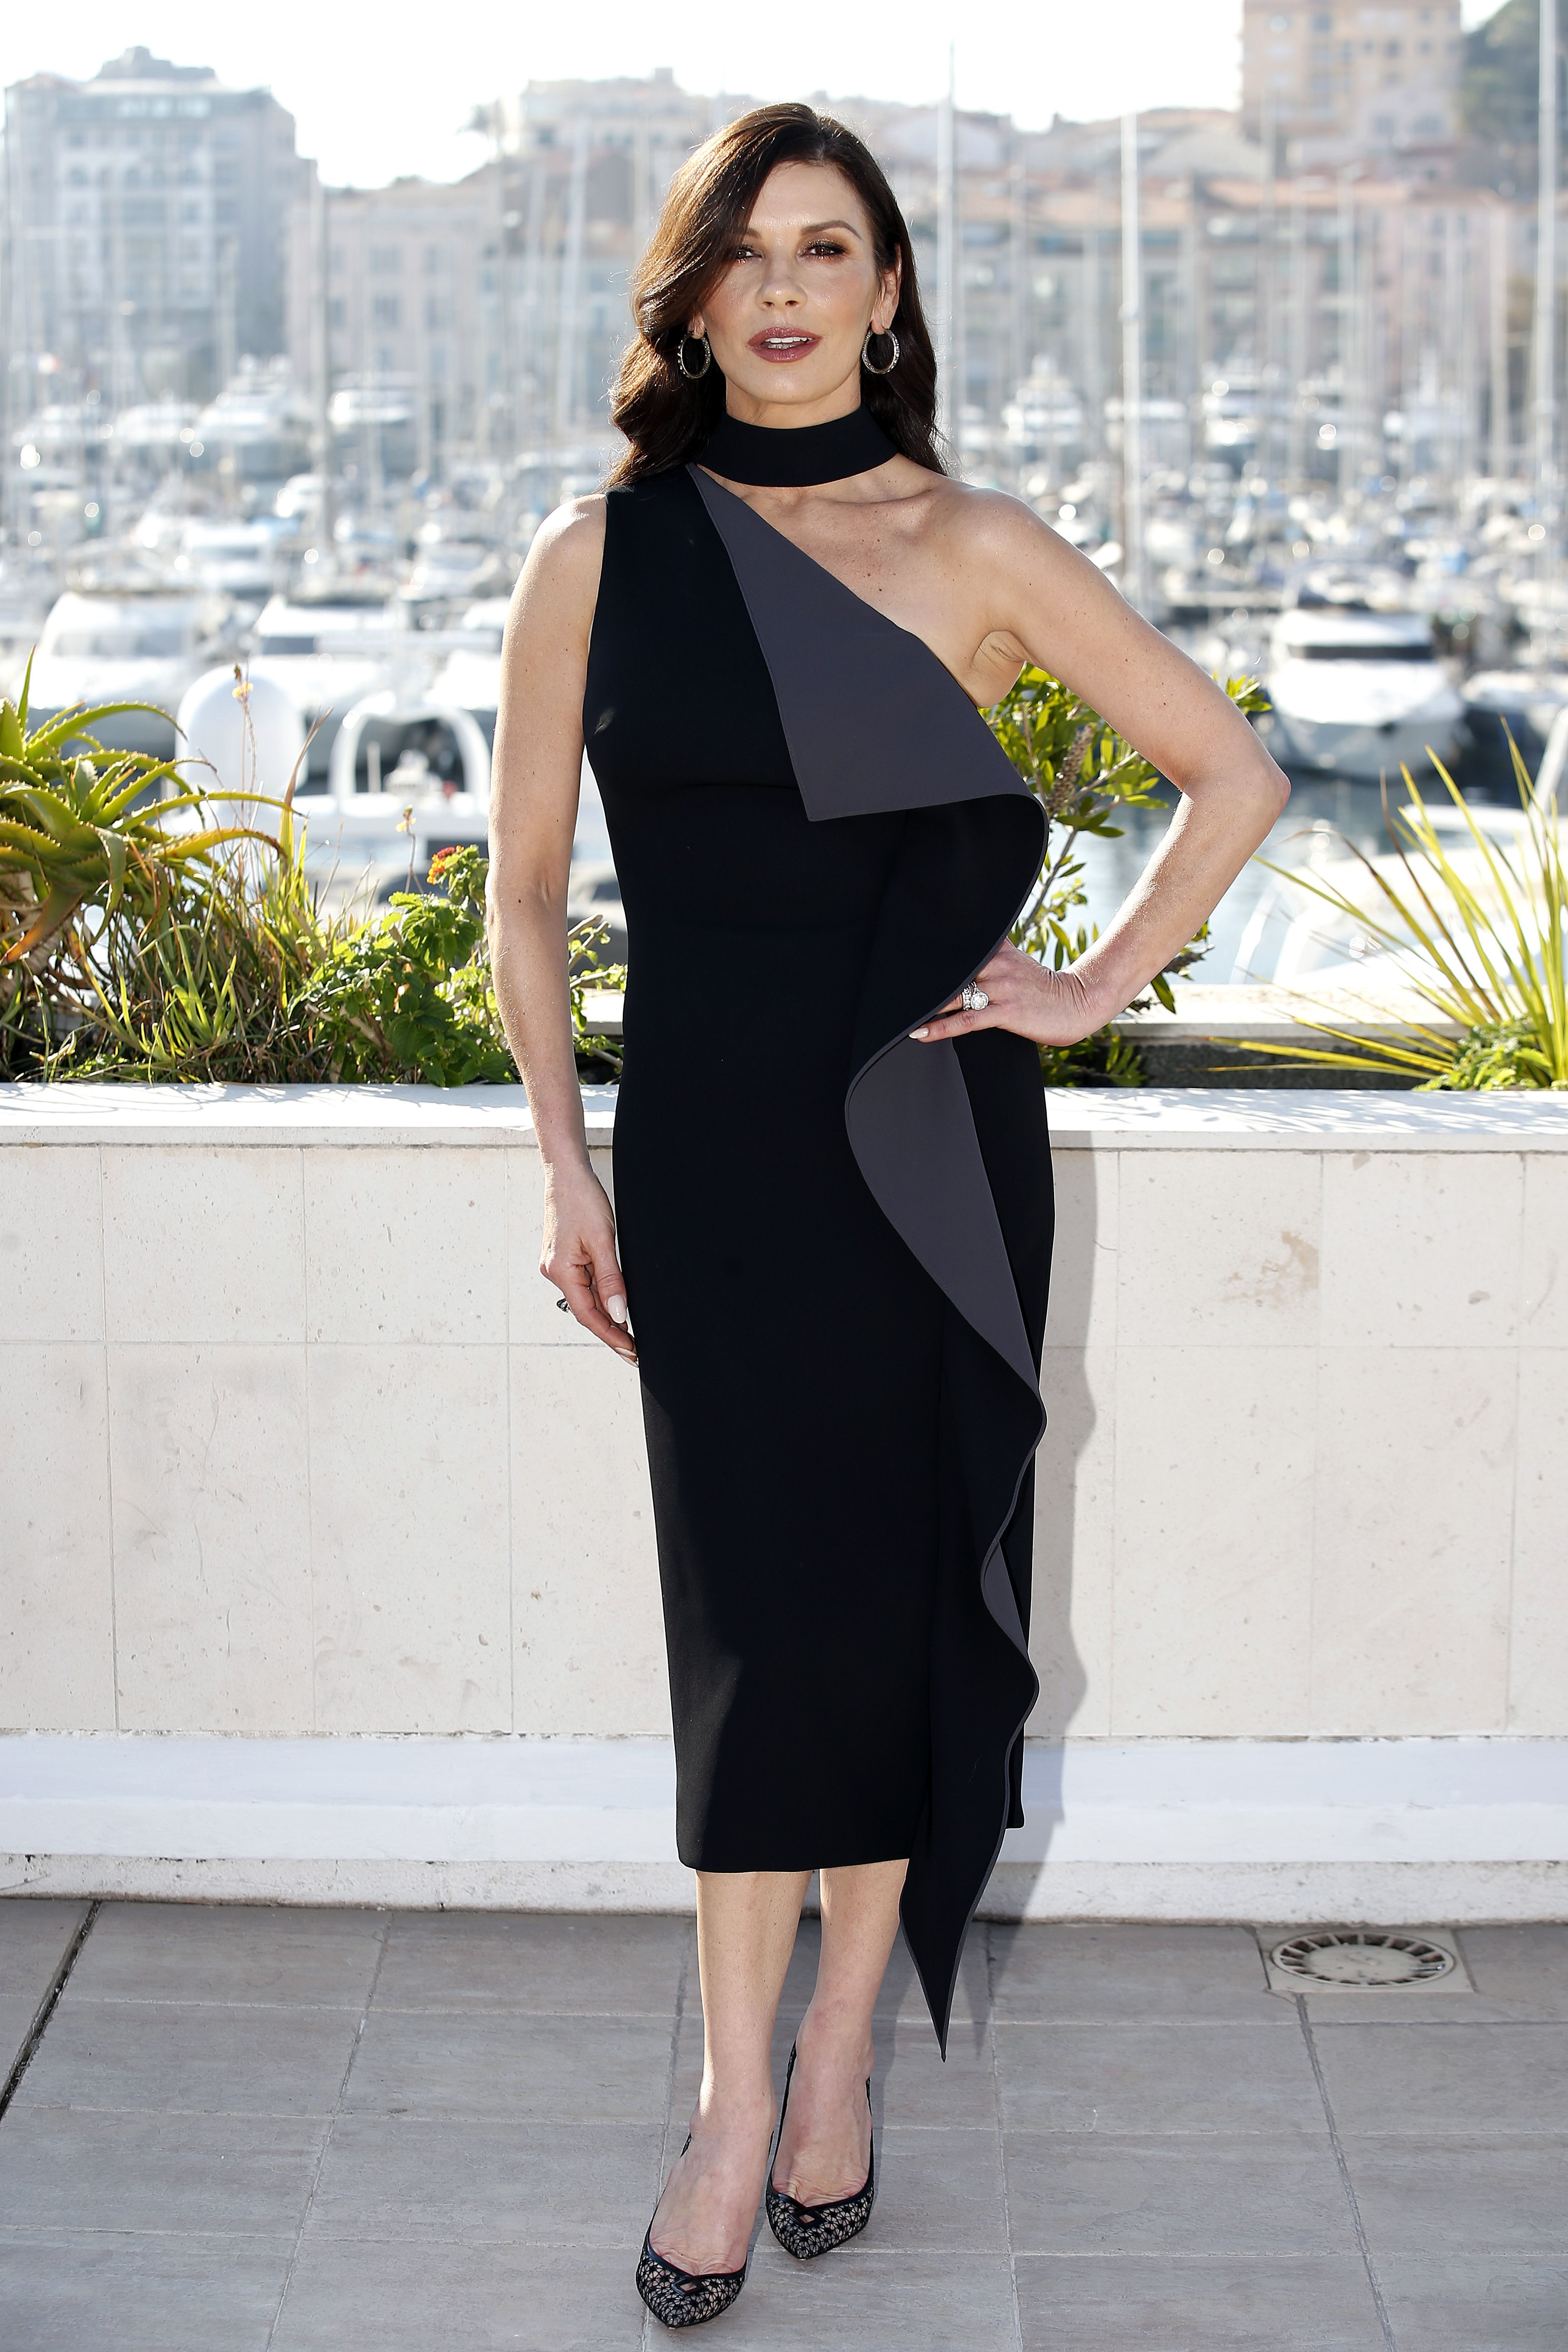 Catherine Zeta Jones attends the MIPCOM television content market 2017 in Cannes, France, on Oct. 16, 2017.